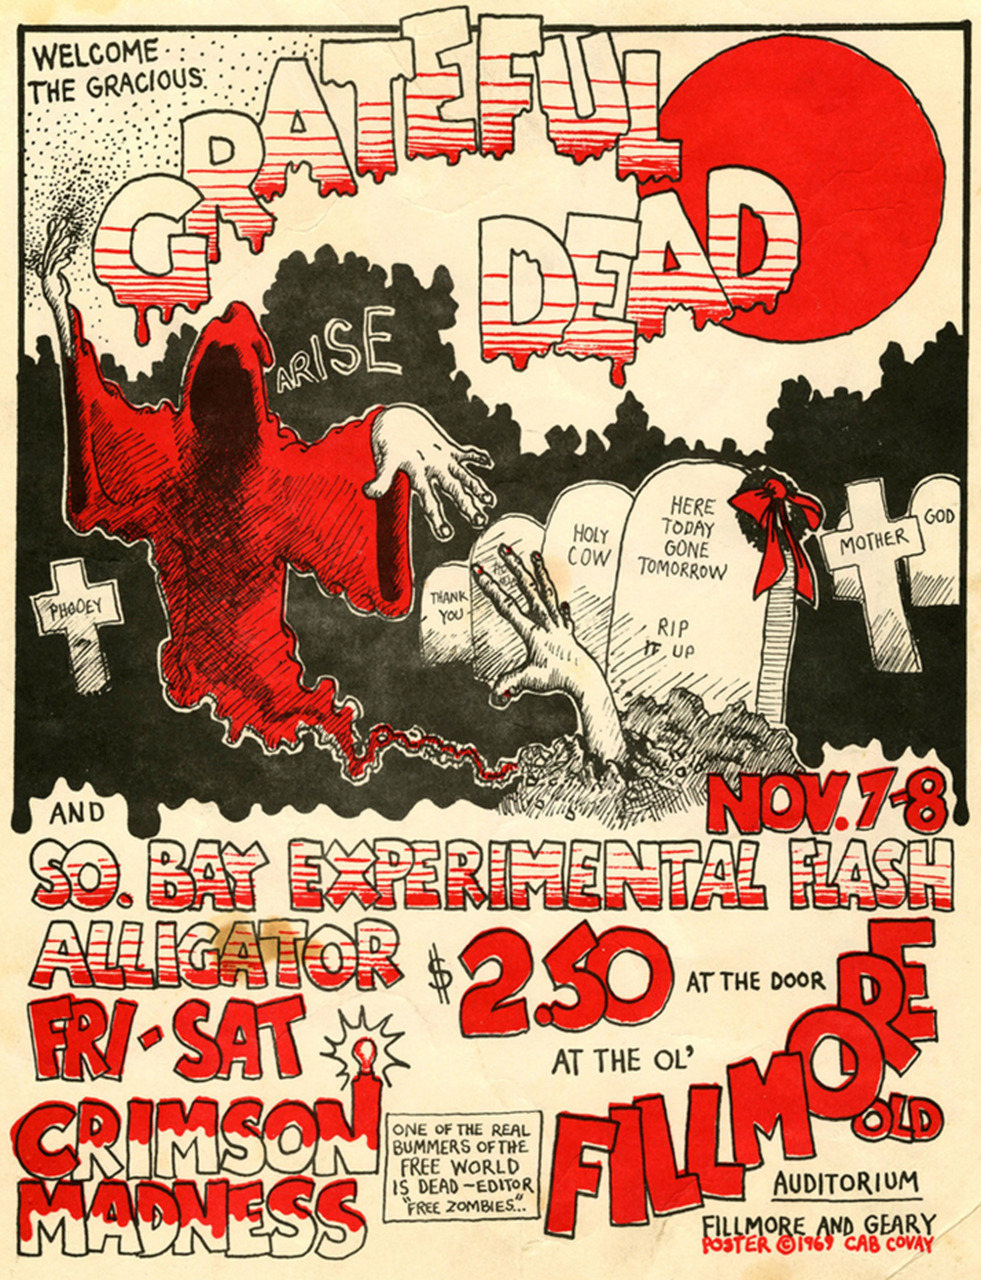 Grateful Dead, So. Bay Experimental Flash, Alligator November 7 & 8, 1969, Fillmore West